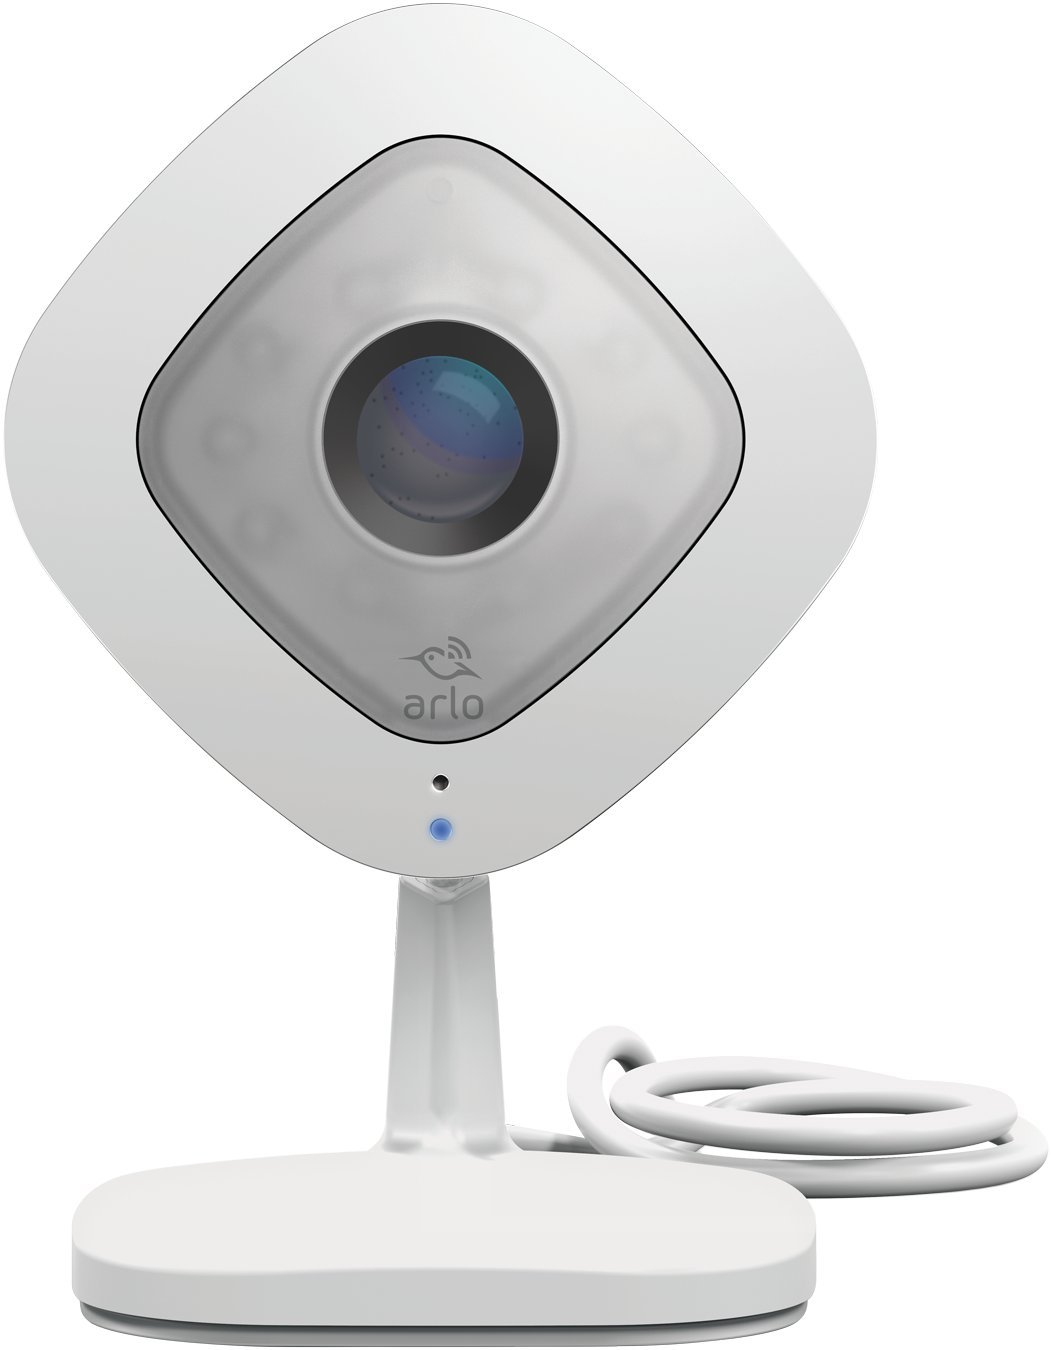 Arlo Q - 1080p HD Security Camera with Audio (VMC3040-100NAS)